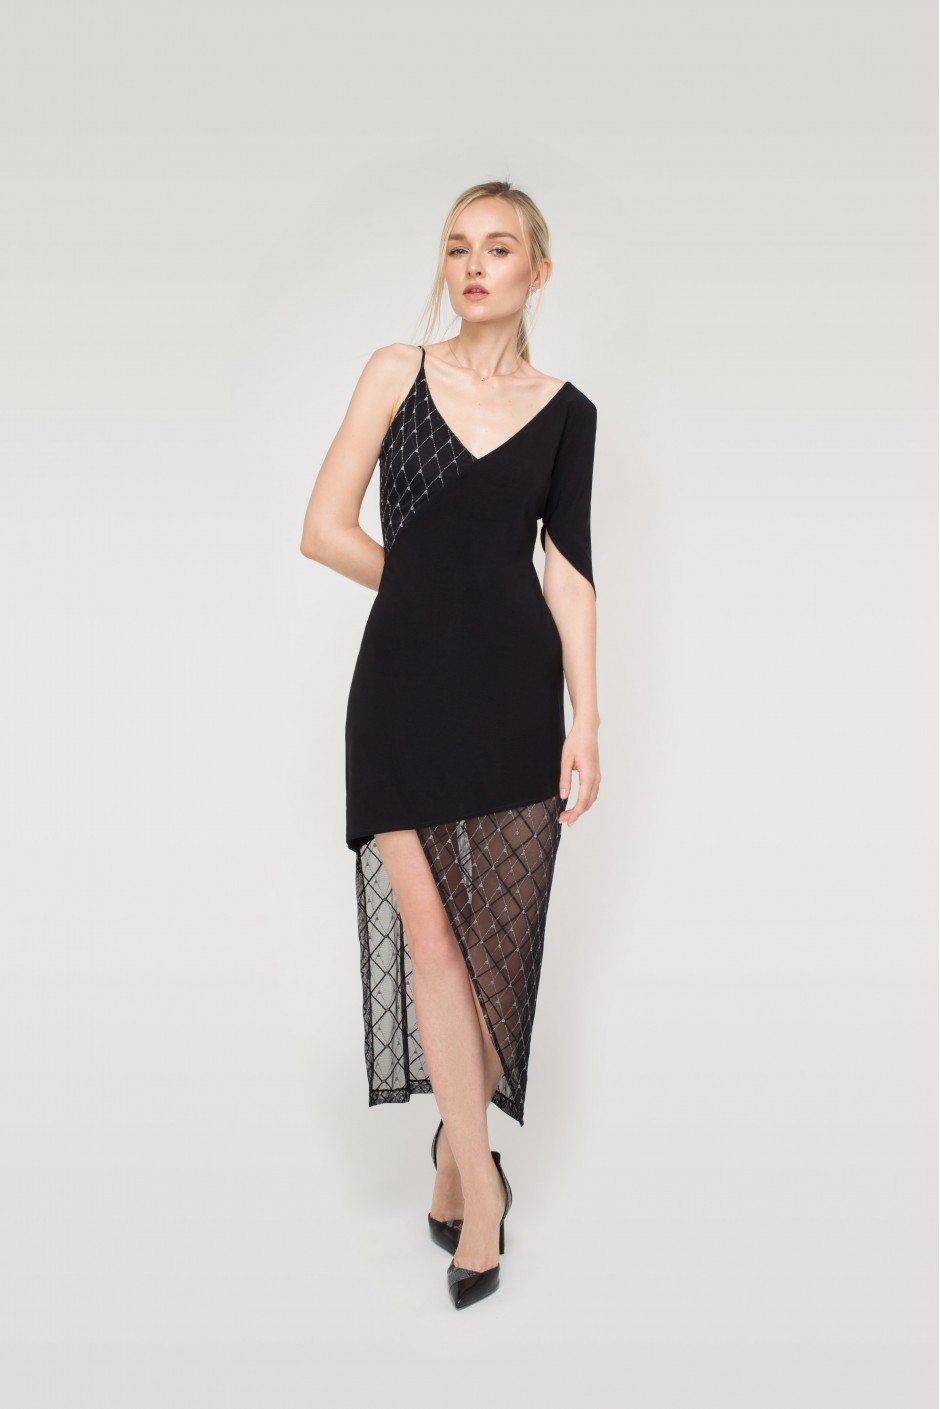 Asymmetric Sparkling Black Dress